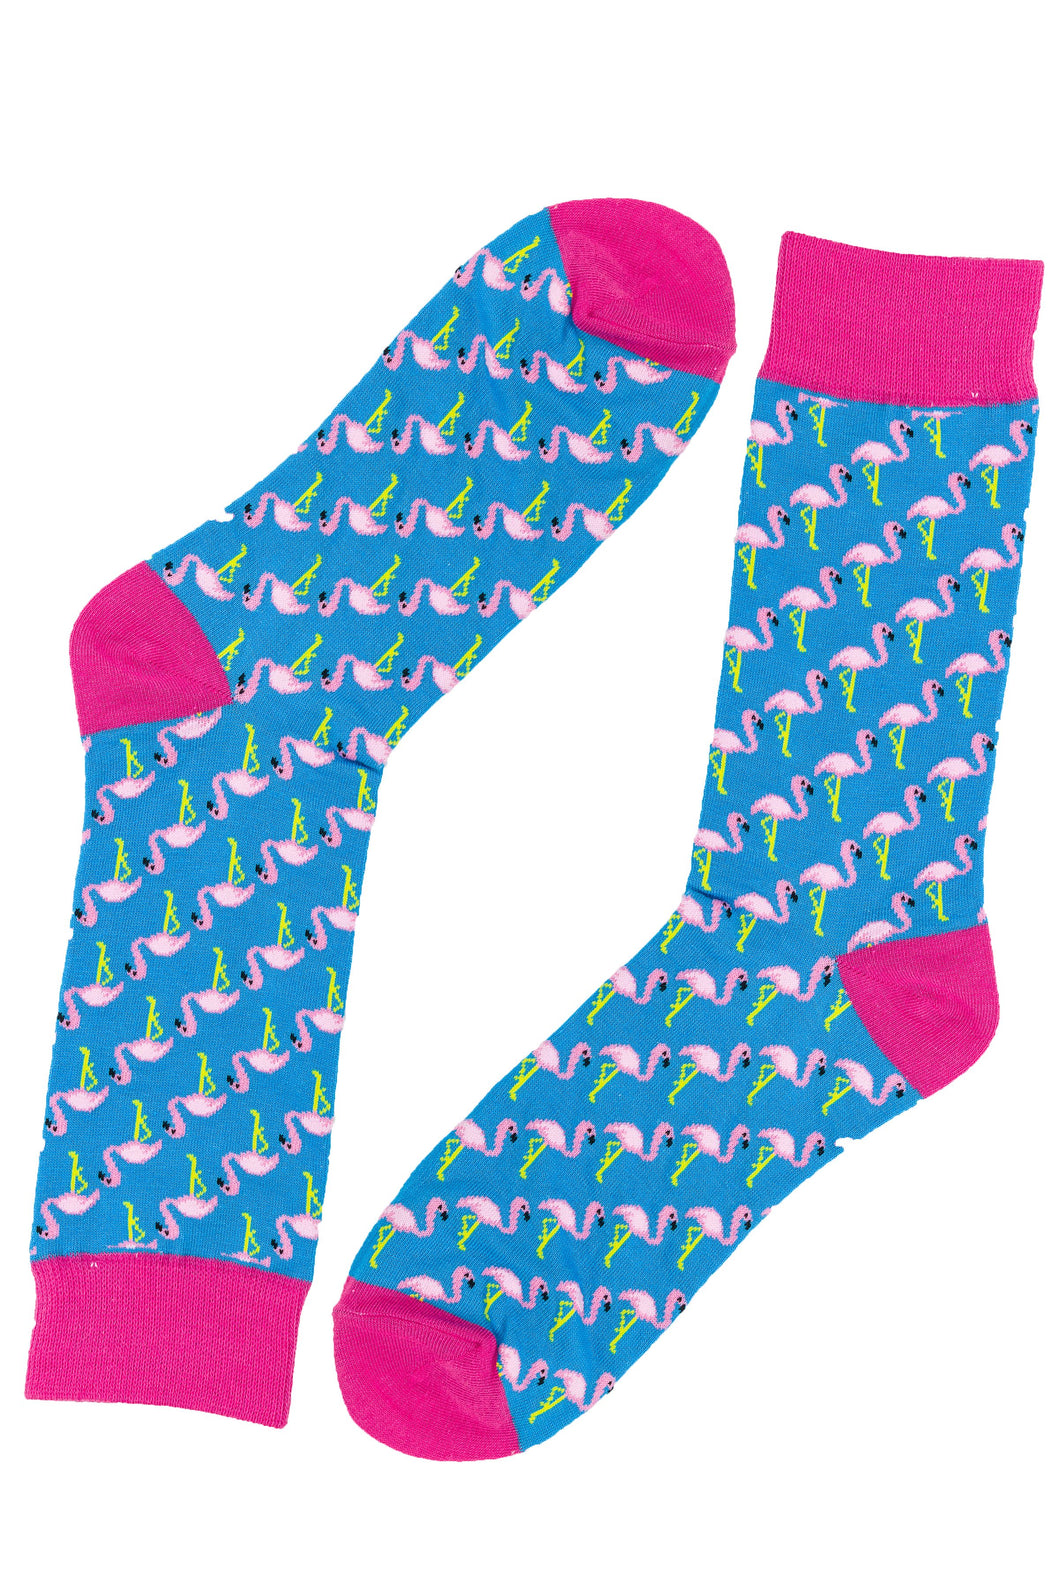 Flamingo Socks by Inverloch Diabetic Unit Auxiliary